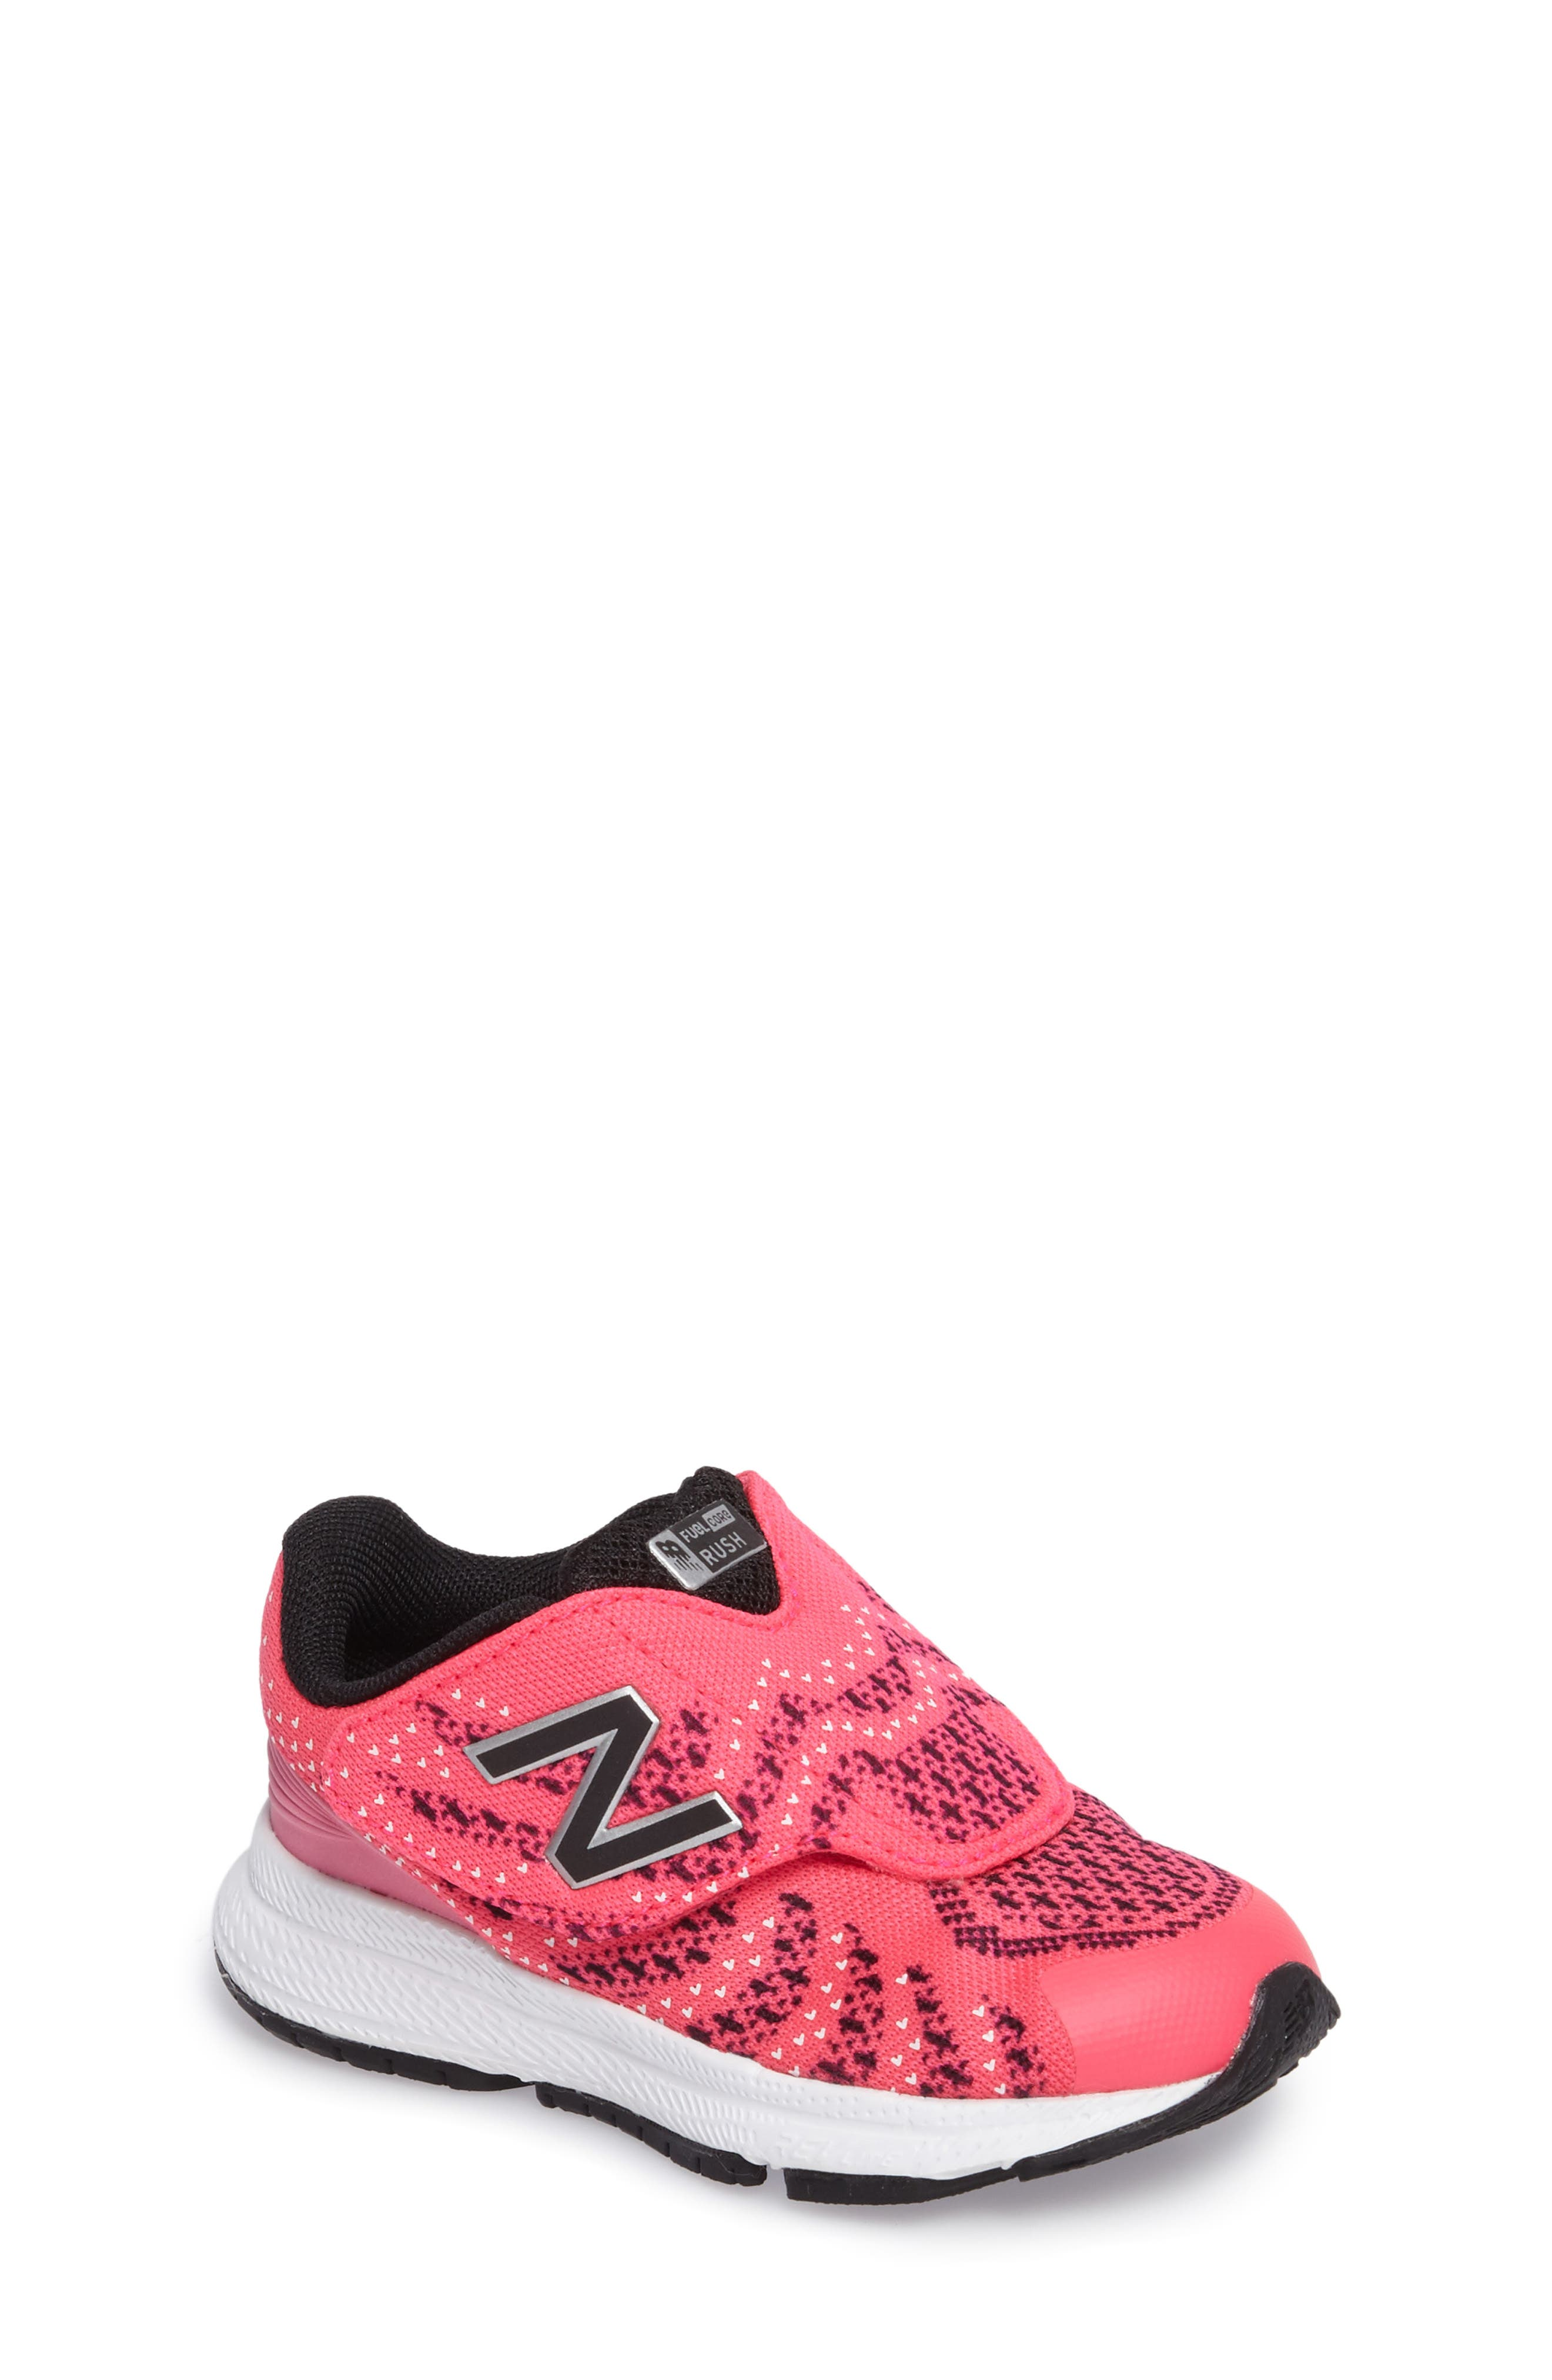 new balance yoga shoes. new balance fuelcore rush v3 knit sneaker (baby, walker, toddler \u0026 little kid yoga shoes